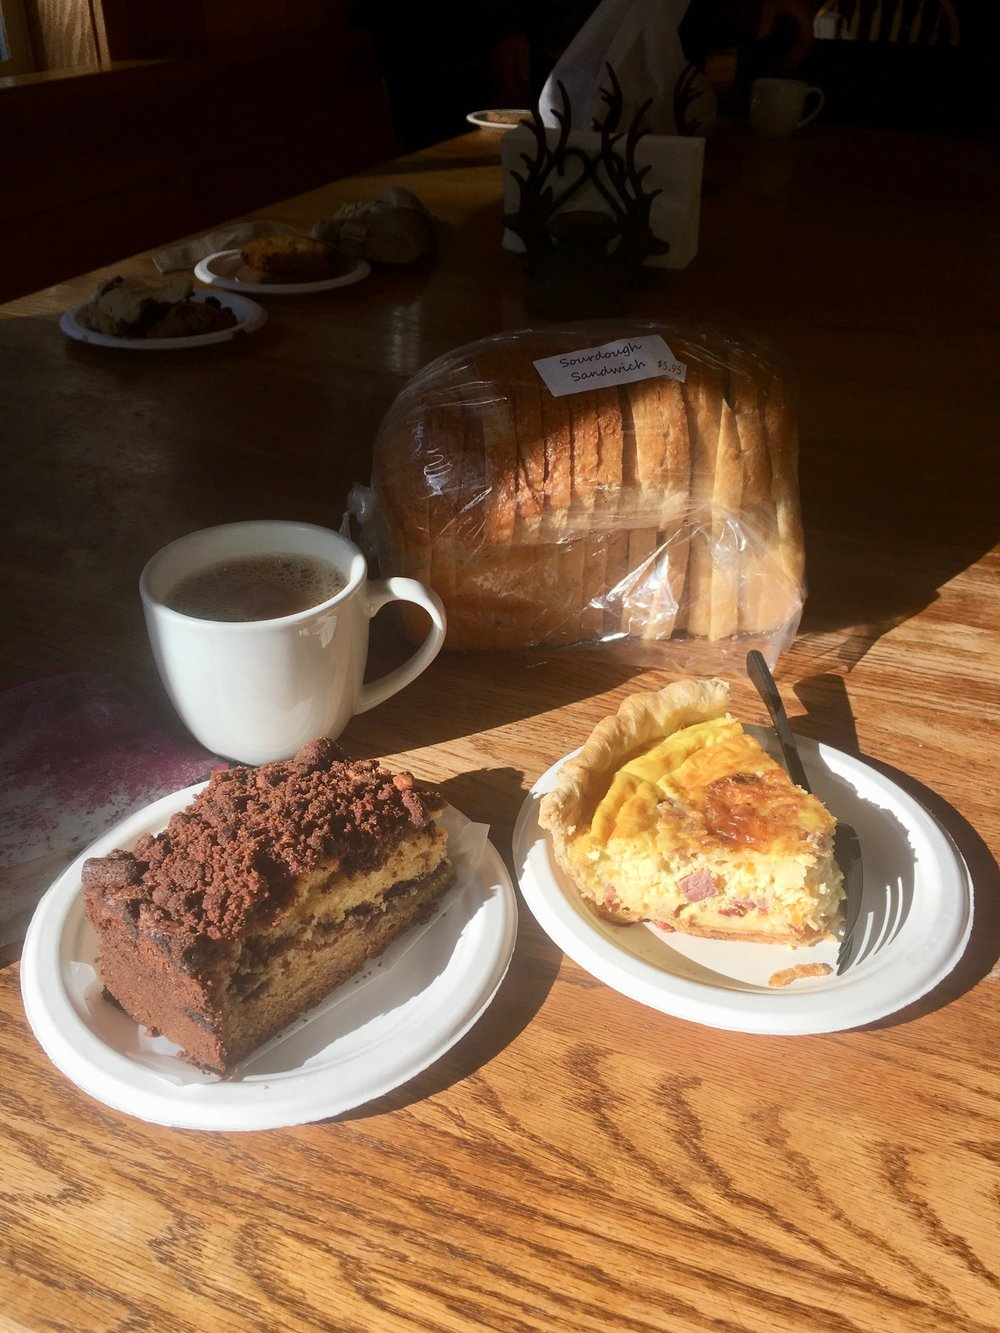 My loot from the bakery in Stehekin, WA. I would return to Stehekin just for this bakery.